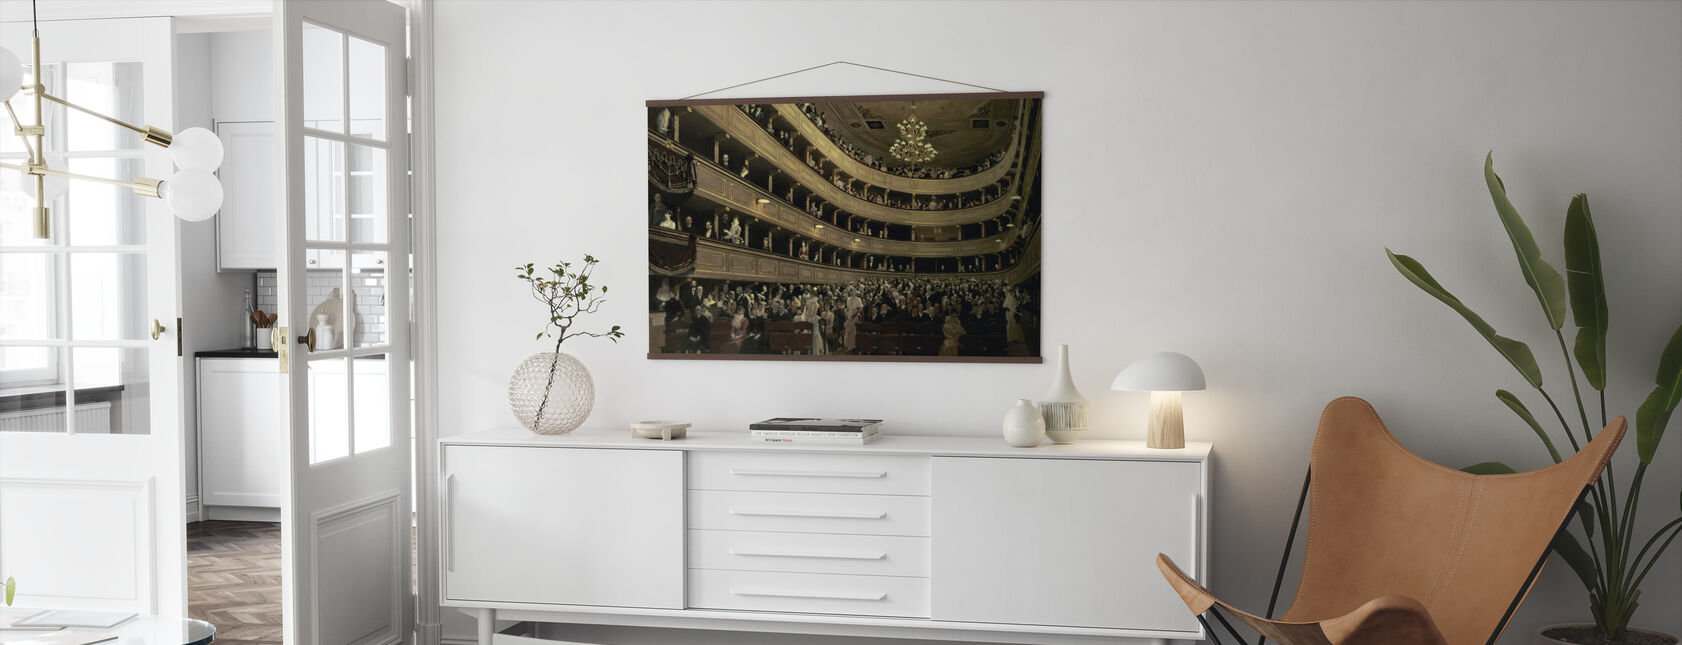 Old Castle Theatre - Gustav Klimt - Poster - Living Room